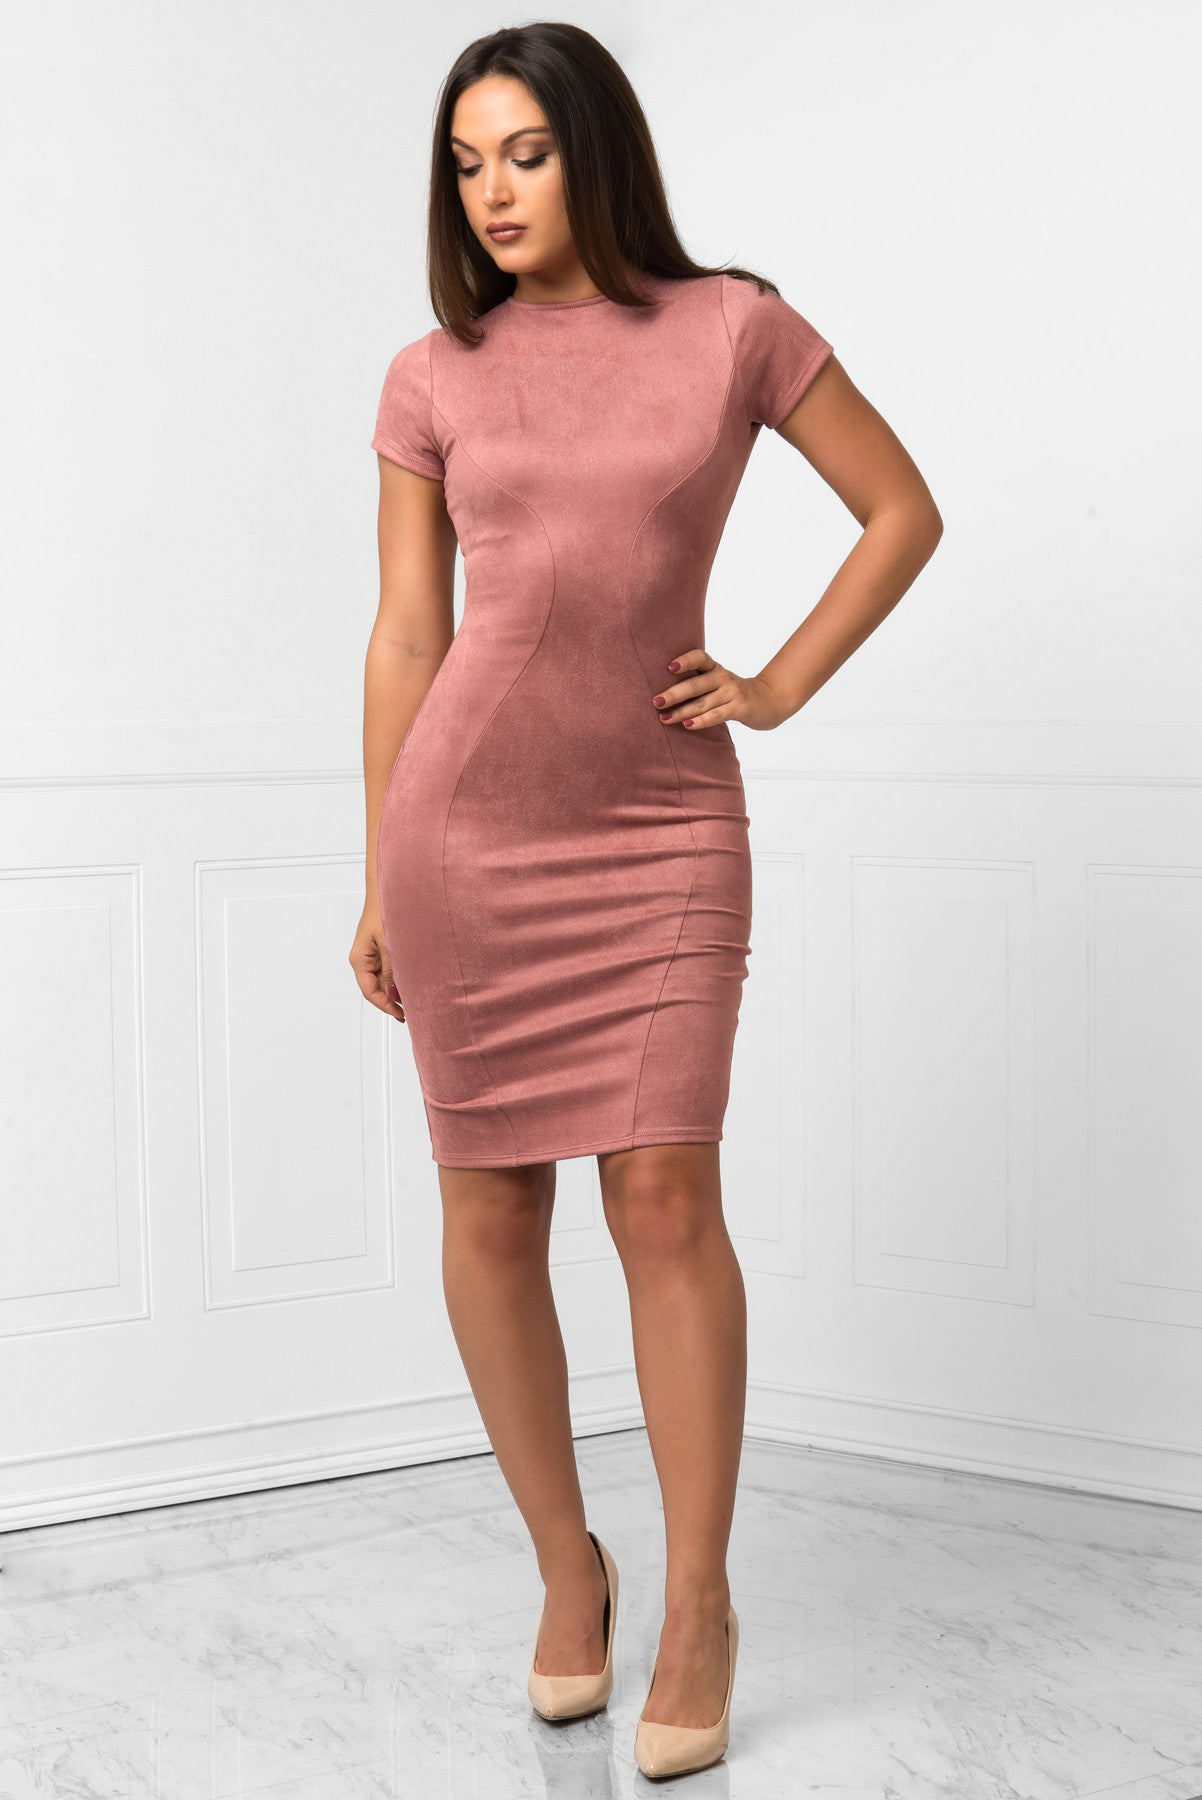 Amber  Suede Dress - Fashion Effect Store  - 1